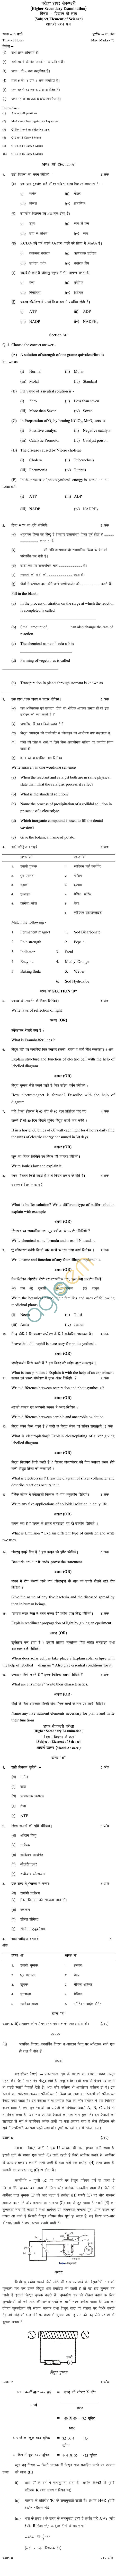 MP BoardClass XII Elements of Science Model Questions & Answers -Set 2